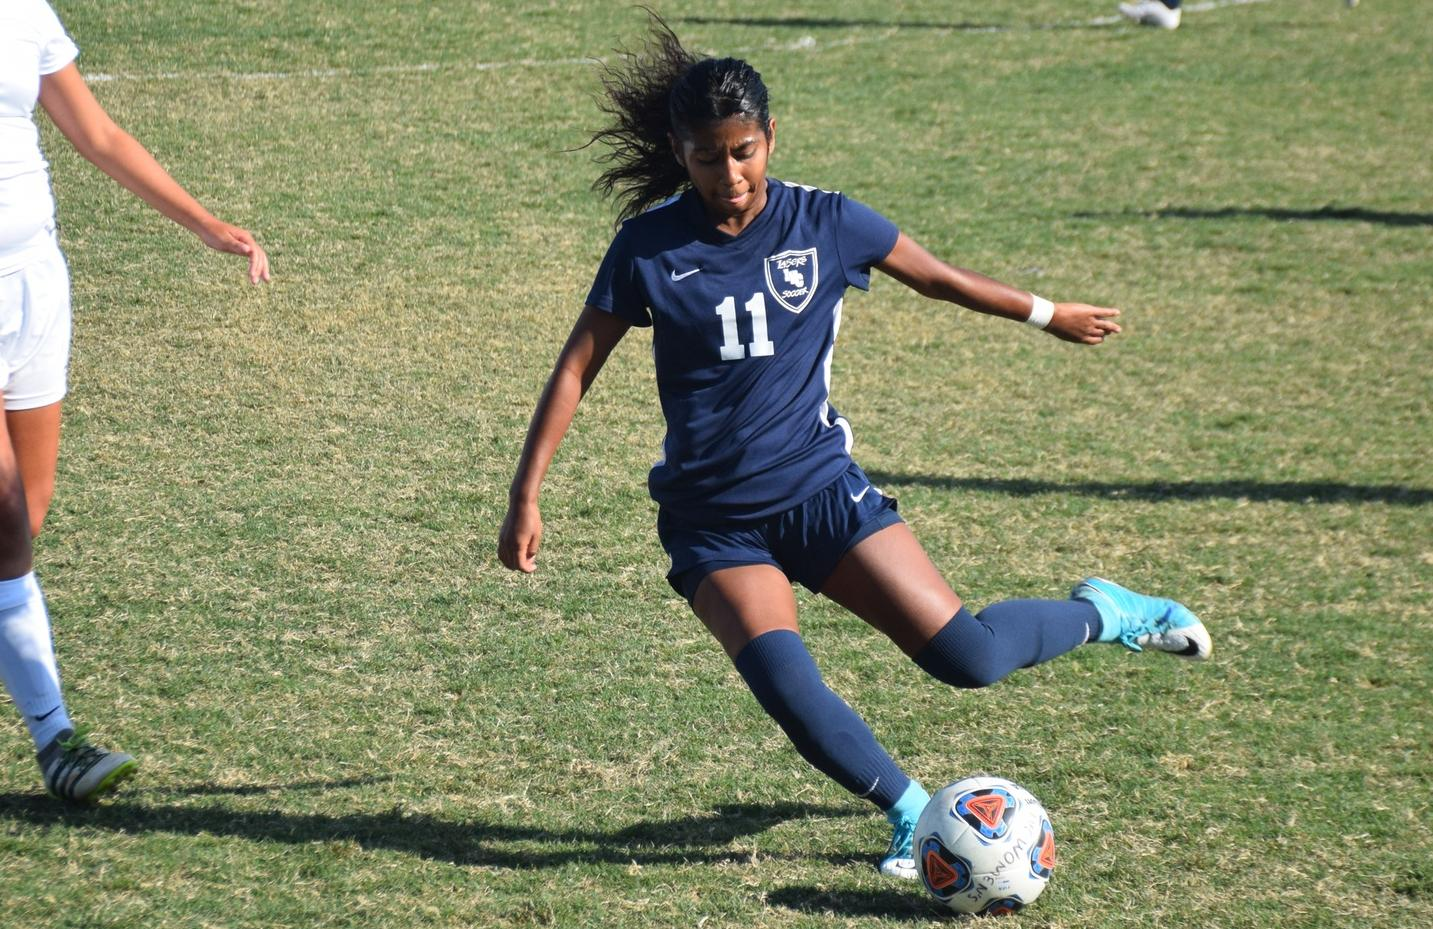 Women's soccer team runs out of time, falls to Fullerton